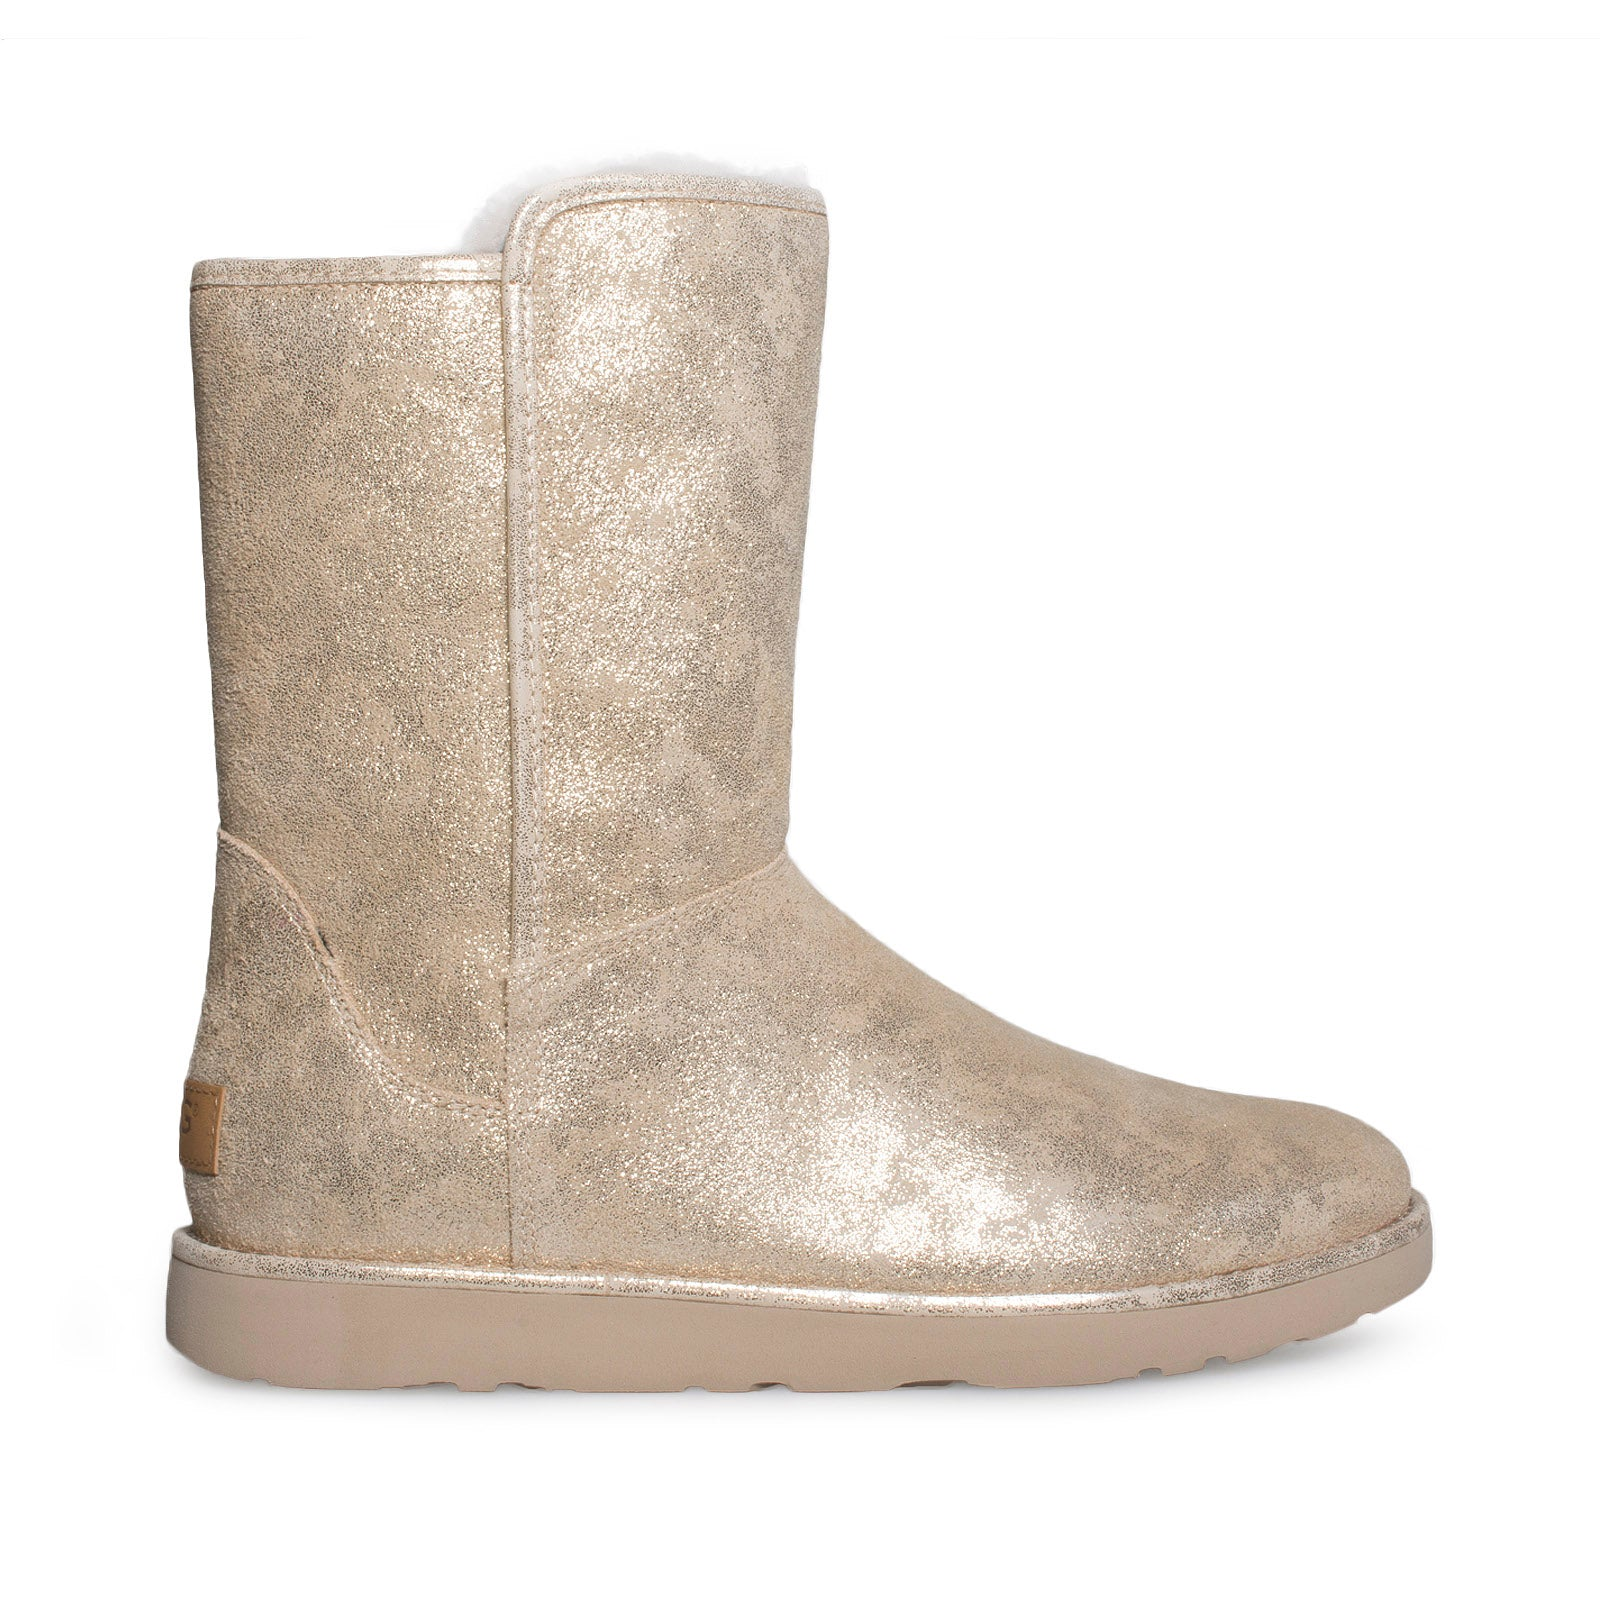 aec1fd870d9 UGG Abree Short II Stardust Metallic Gold Boots - Women's